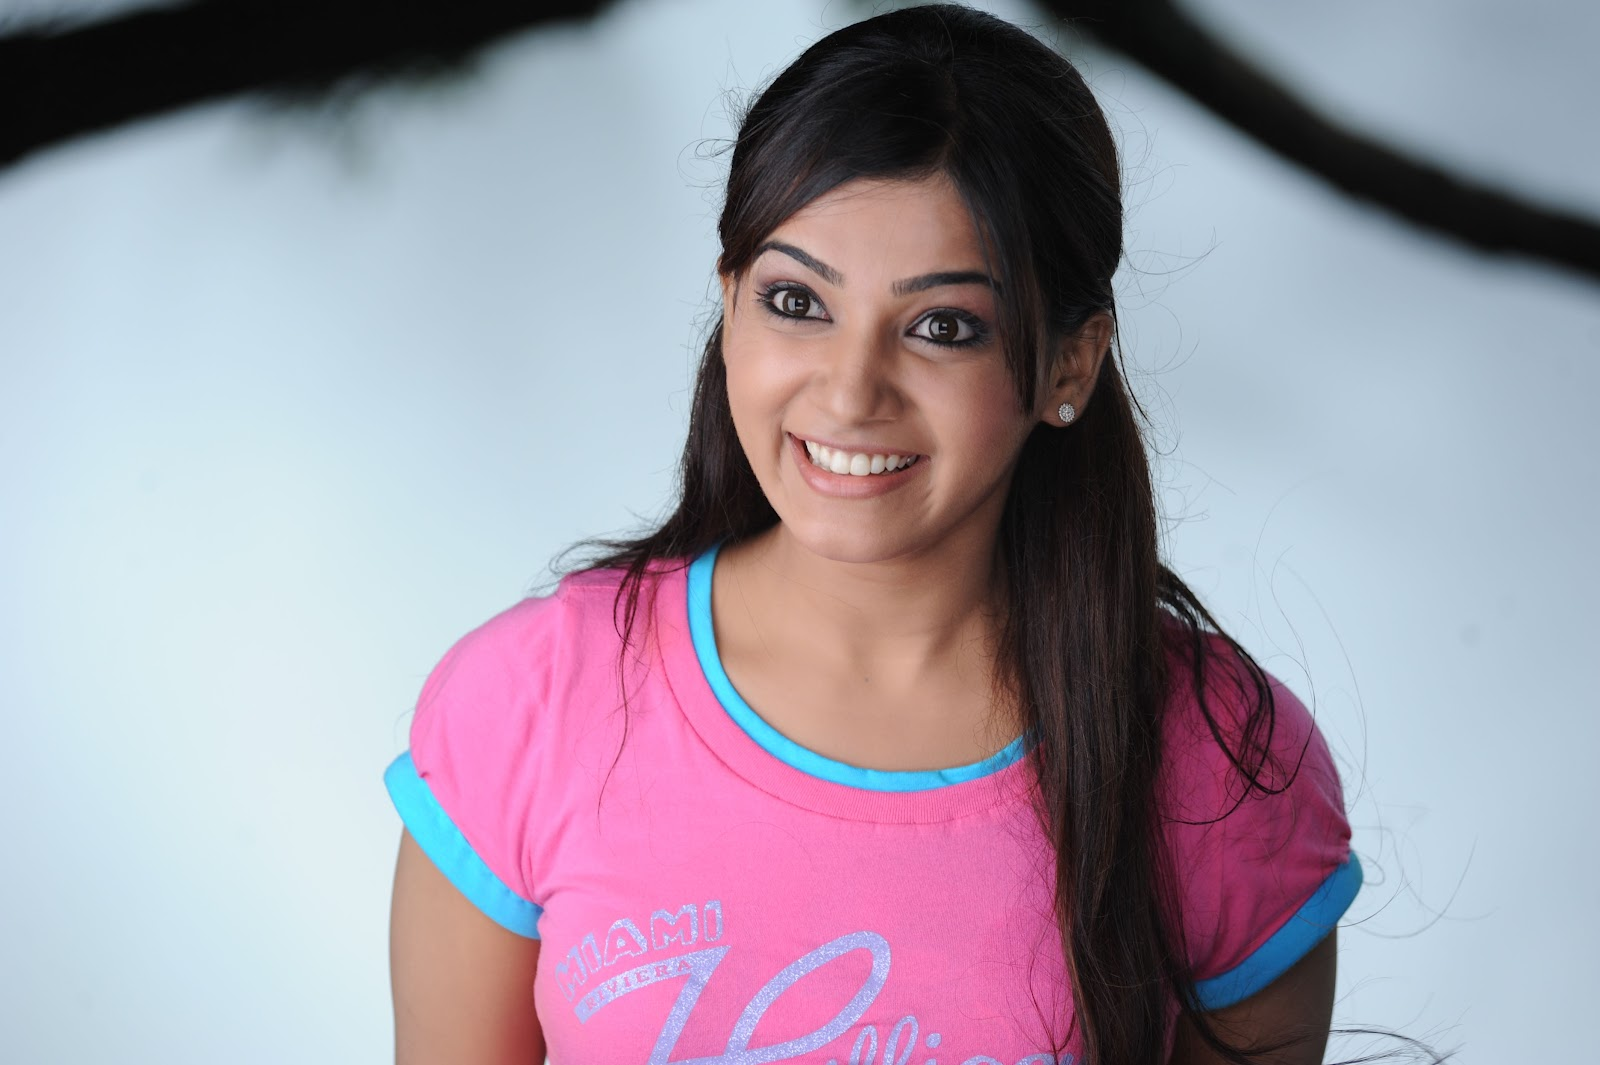 Samantha photos old collection 2 | Picture 7